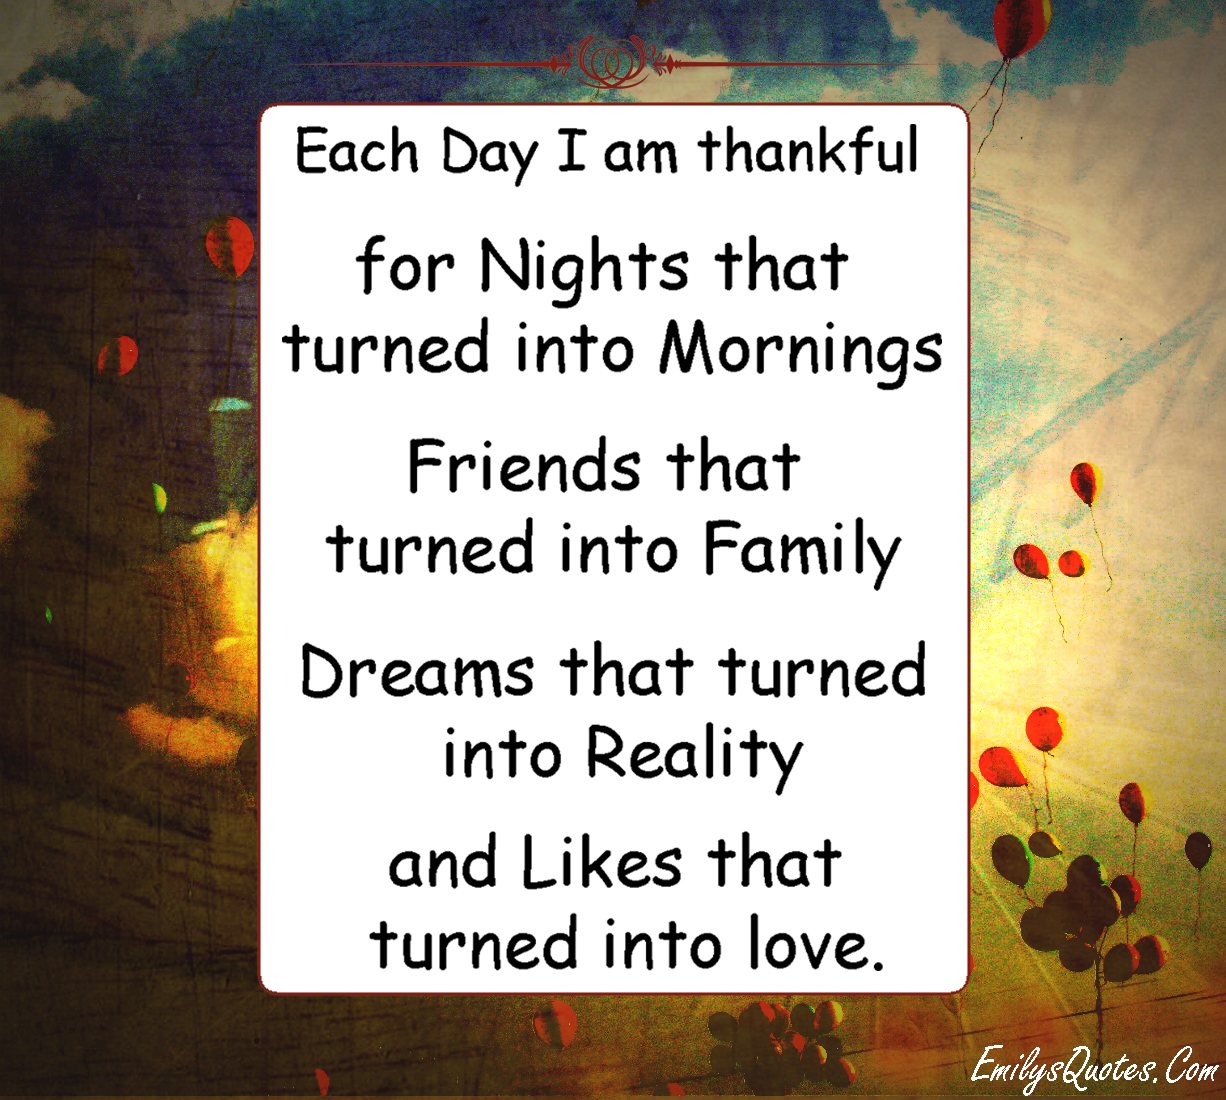 Each day i am thankful for nights that turned into mornings friends com thankful friends family dreams reality love thecheapjerseys Image collections